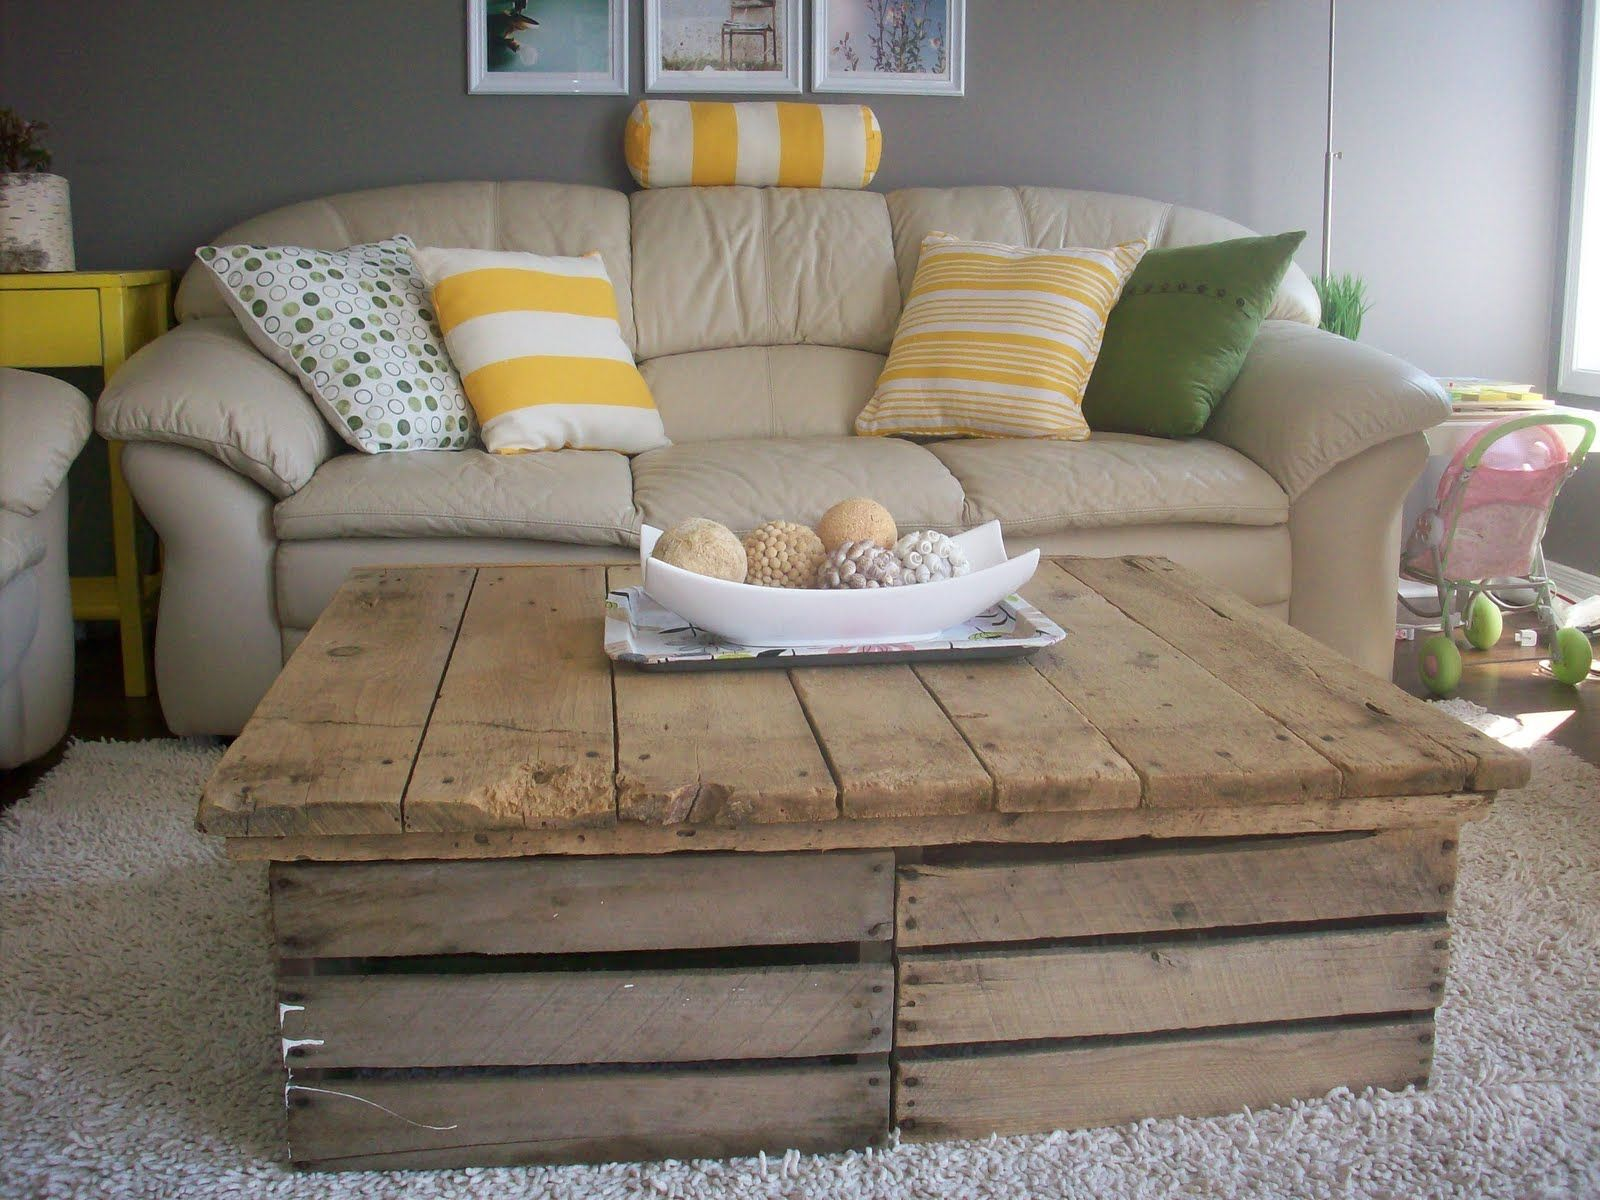 Rustic coffee table from old fruit crates. awesome.